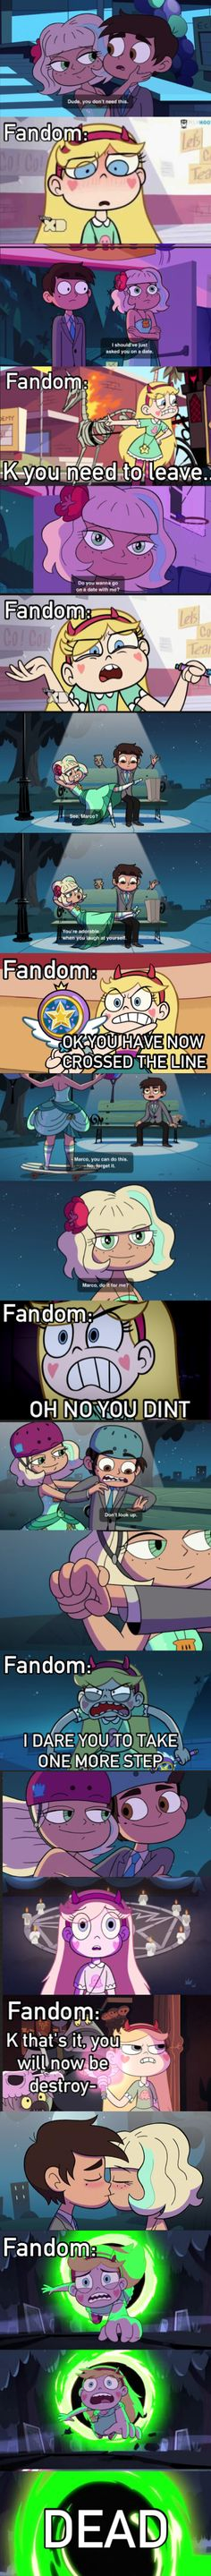 The fandom right now. Personally, I LOVED the fact that Marco and Jackie finally got to go out. Will the end up together? Probably not because of the Blood Moon binding their souls and whatnot and the box thing from the slumber party basically telling us Star's true feeling for him. All we can do right now is see where it goes from here.